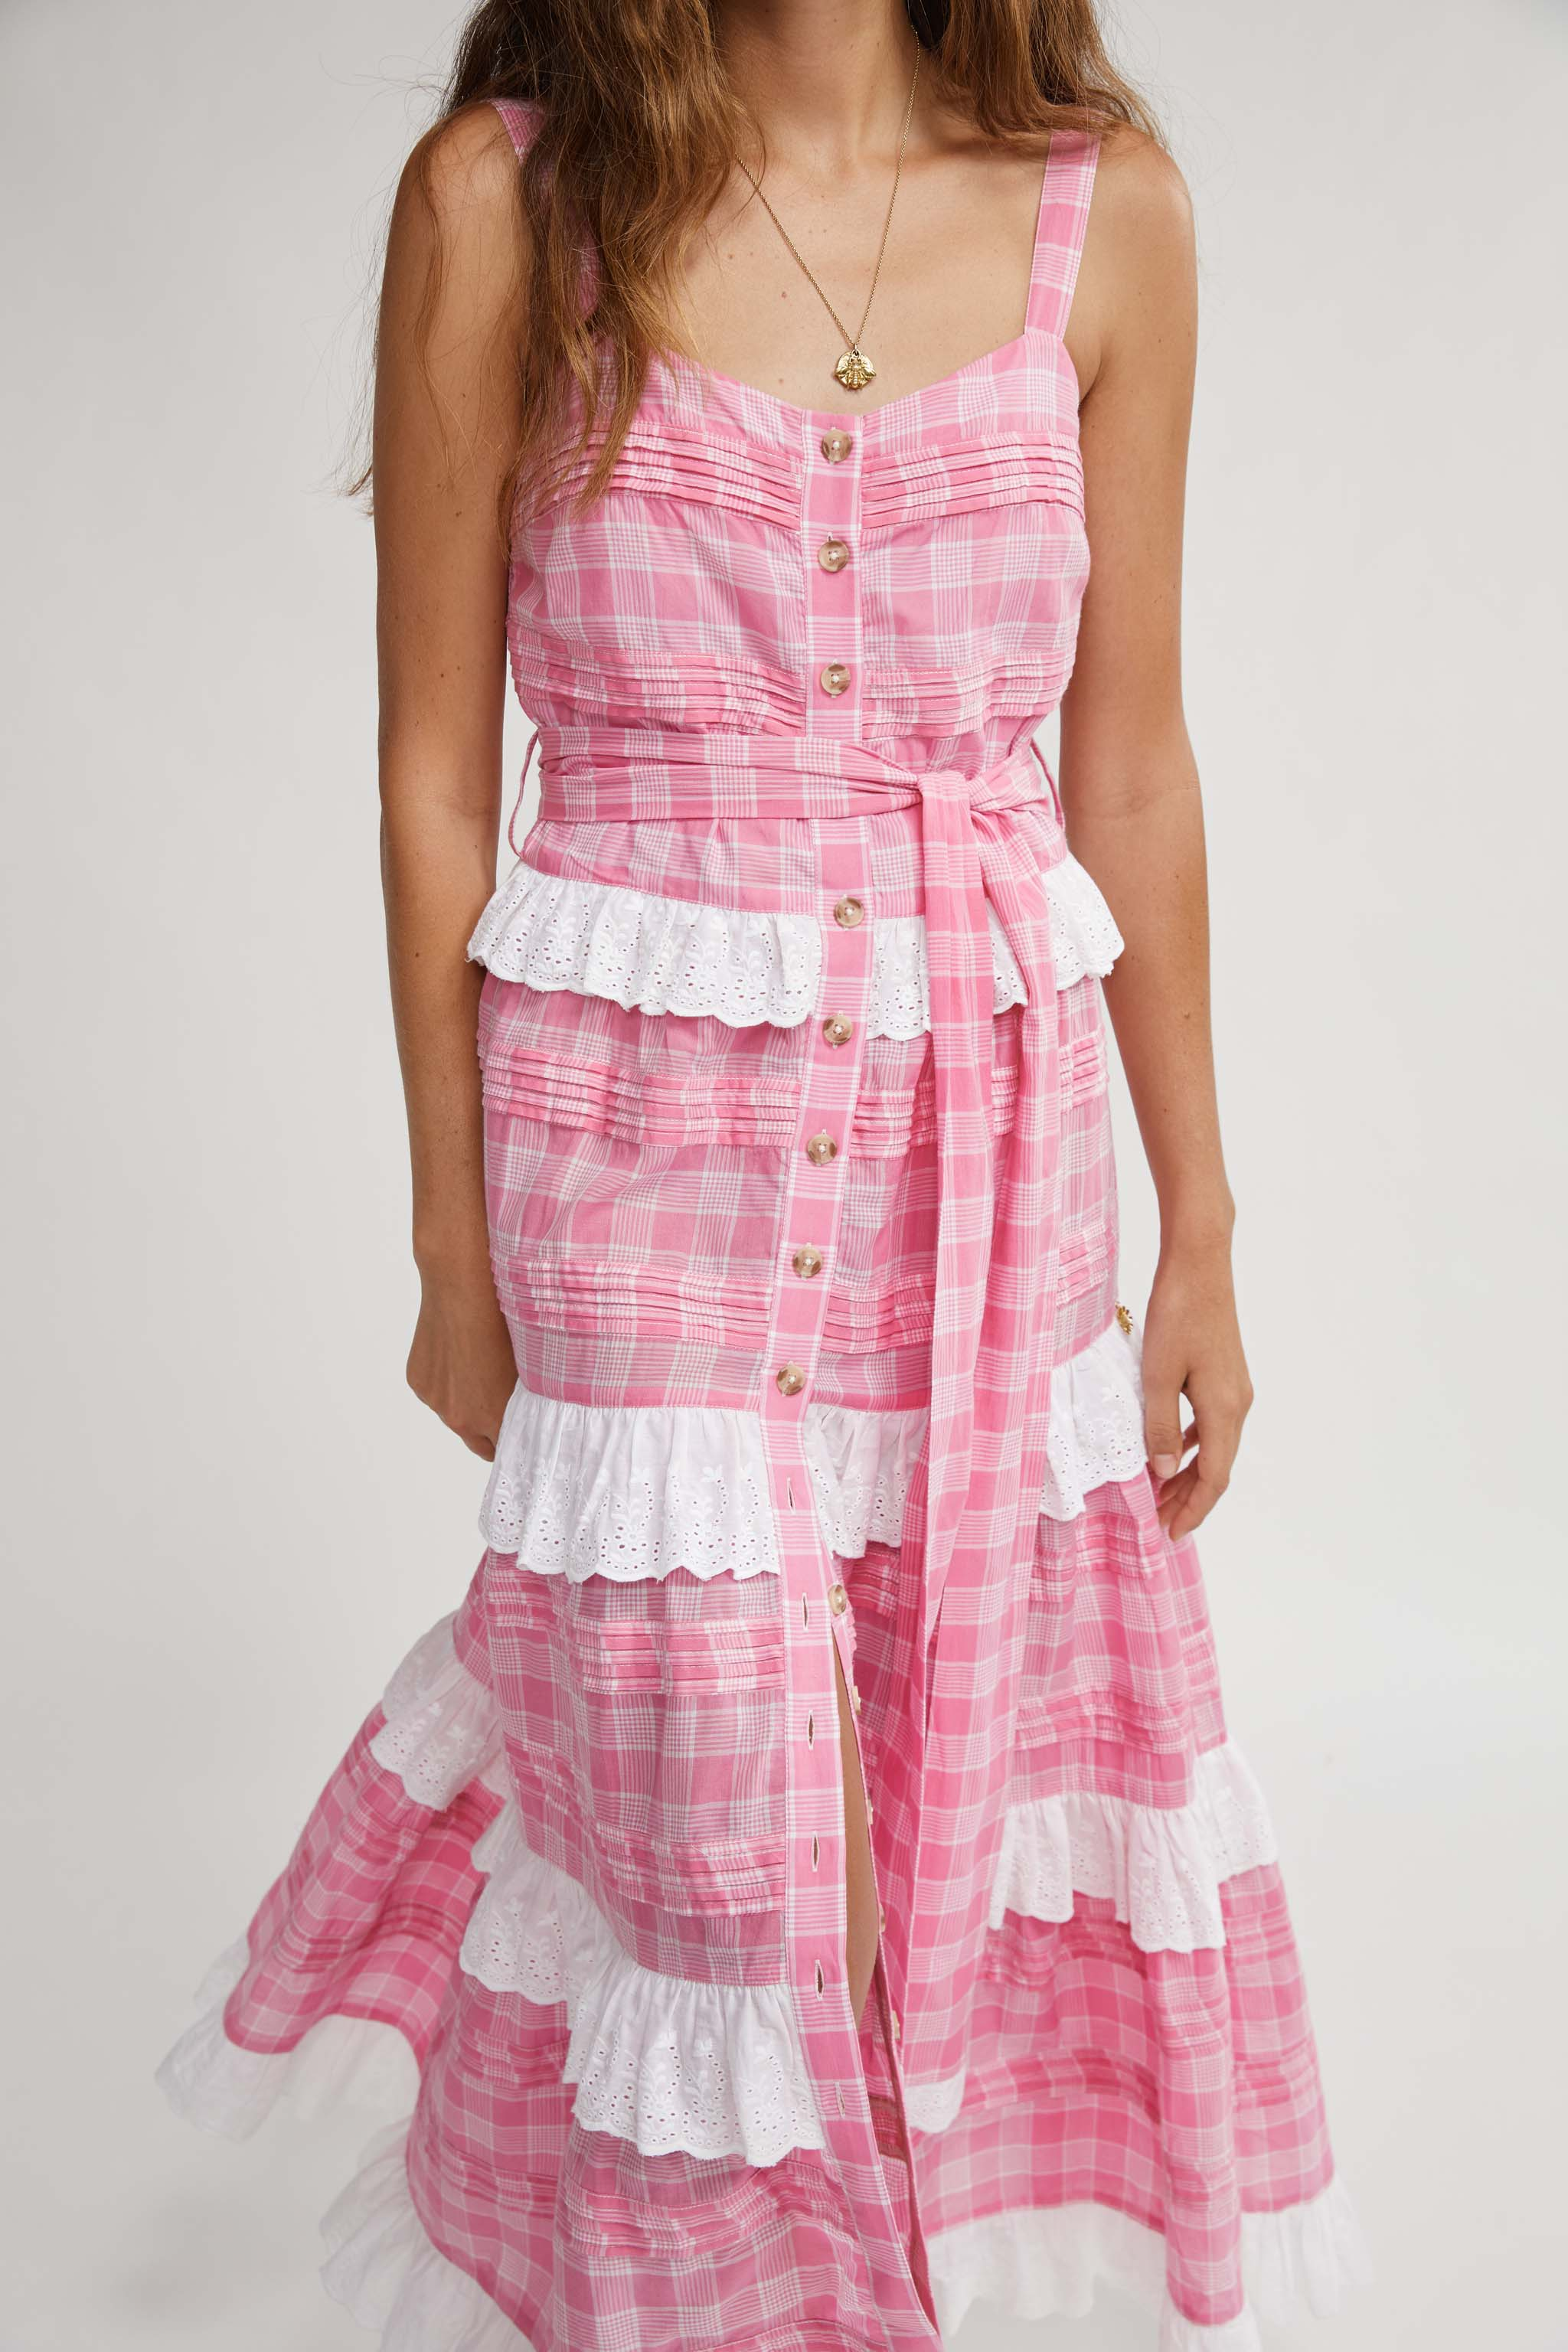 SUGARBABIES PINTUCKED MAXI DRESS